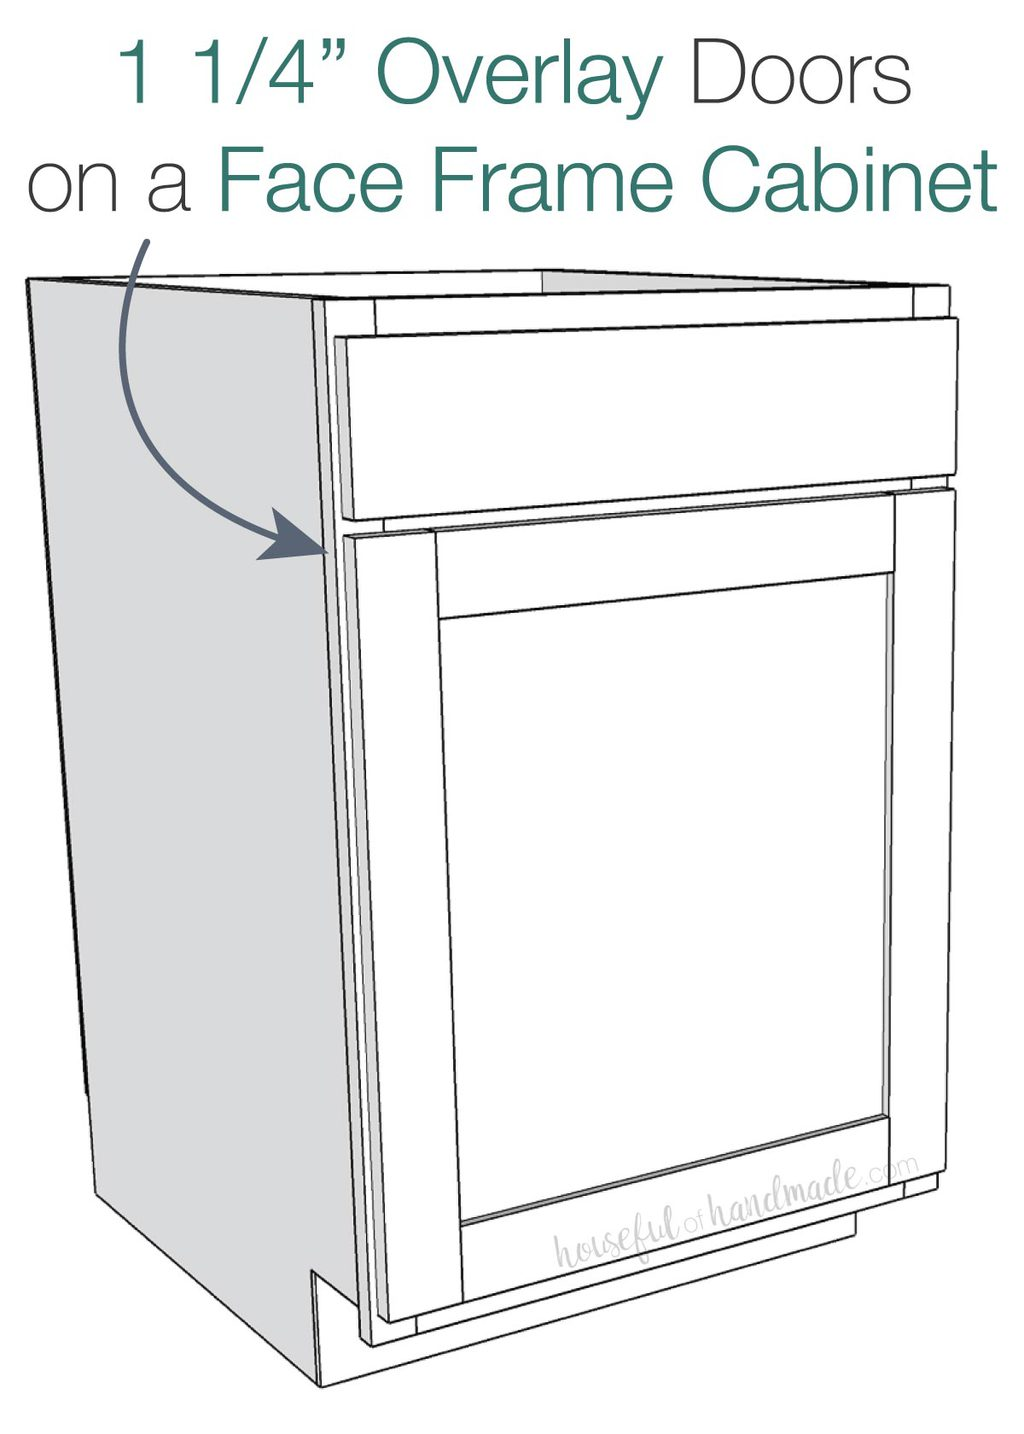 3D sketch of full overlay cabinet doors on a base cabinet.